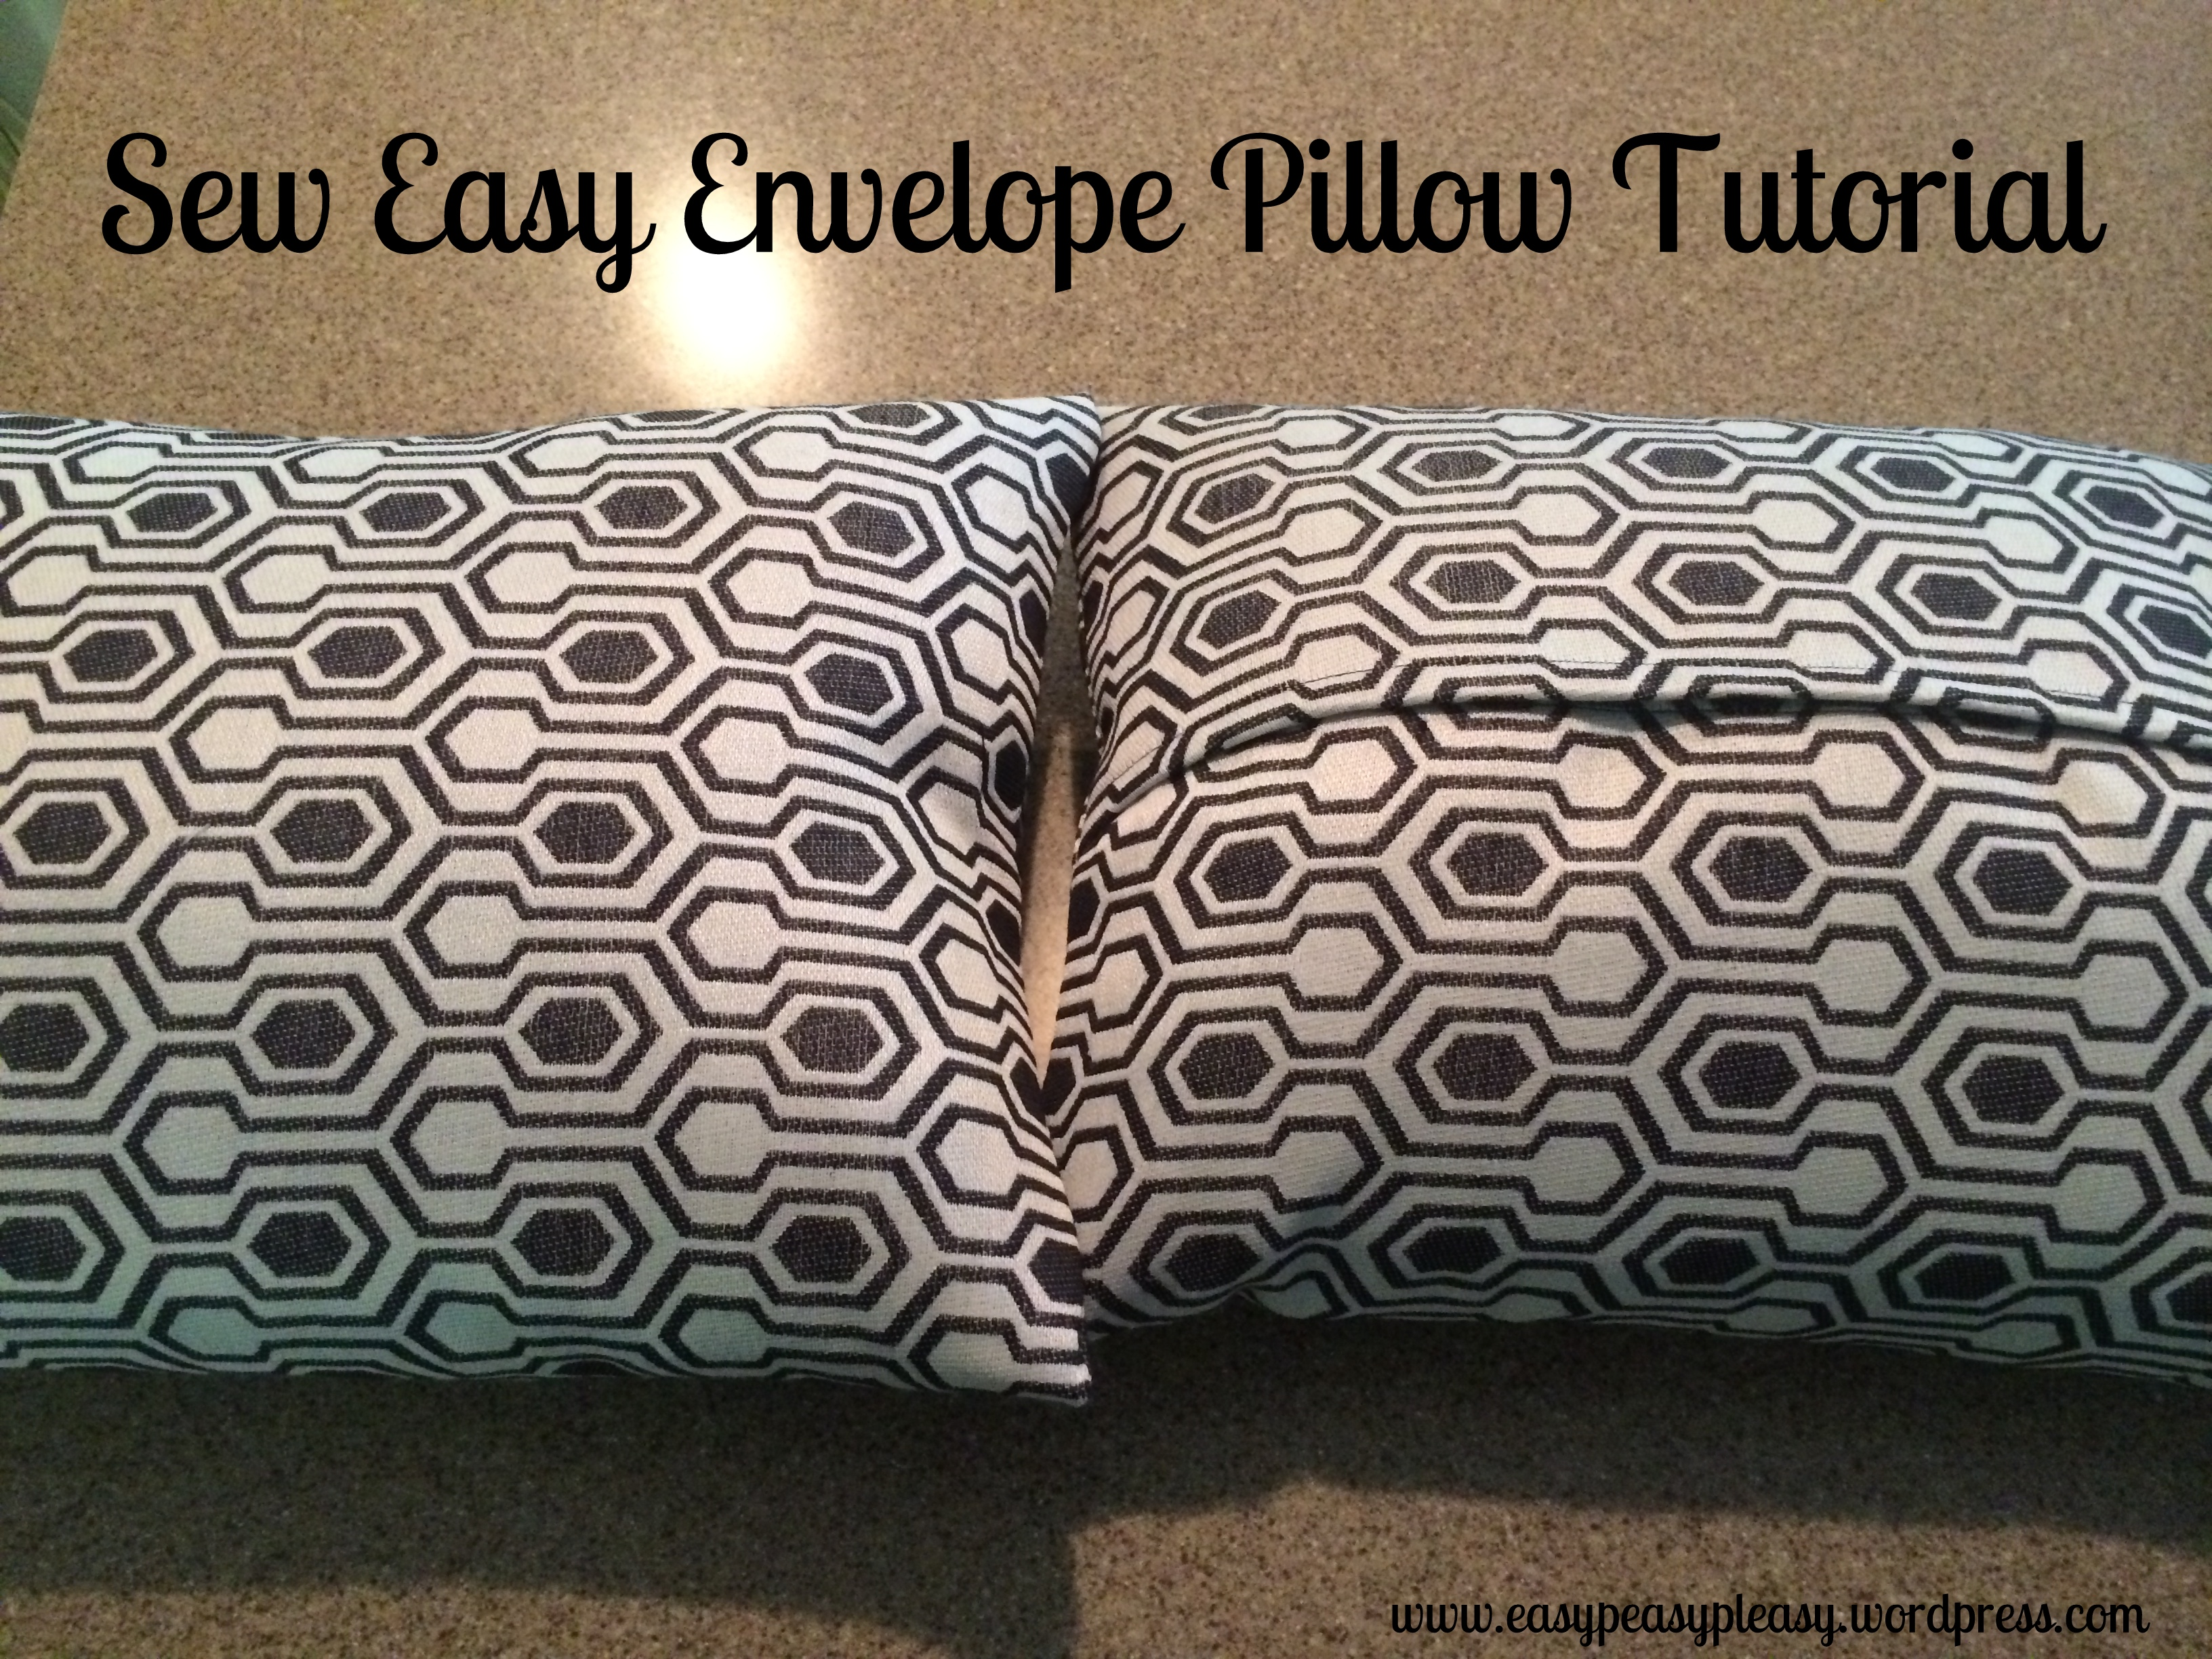 Sew Easy Envelope Pillow Tutorial at www.easypeasypleasy.wordpress.com-001